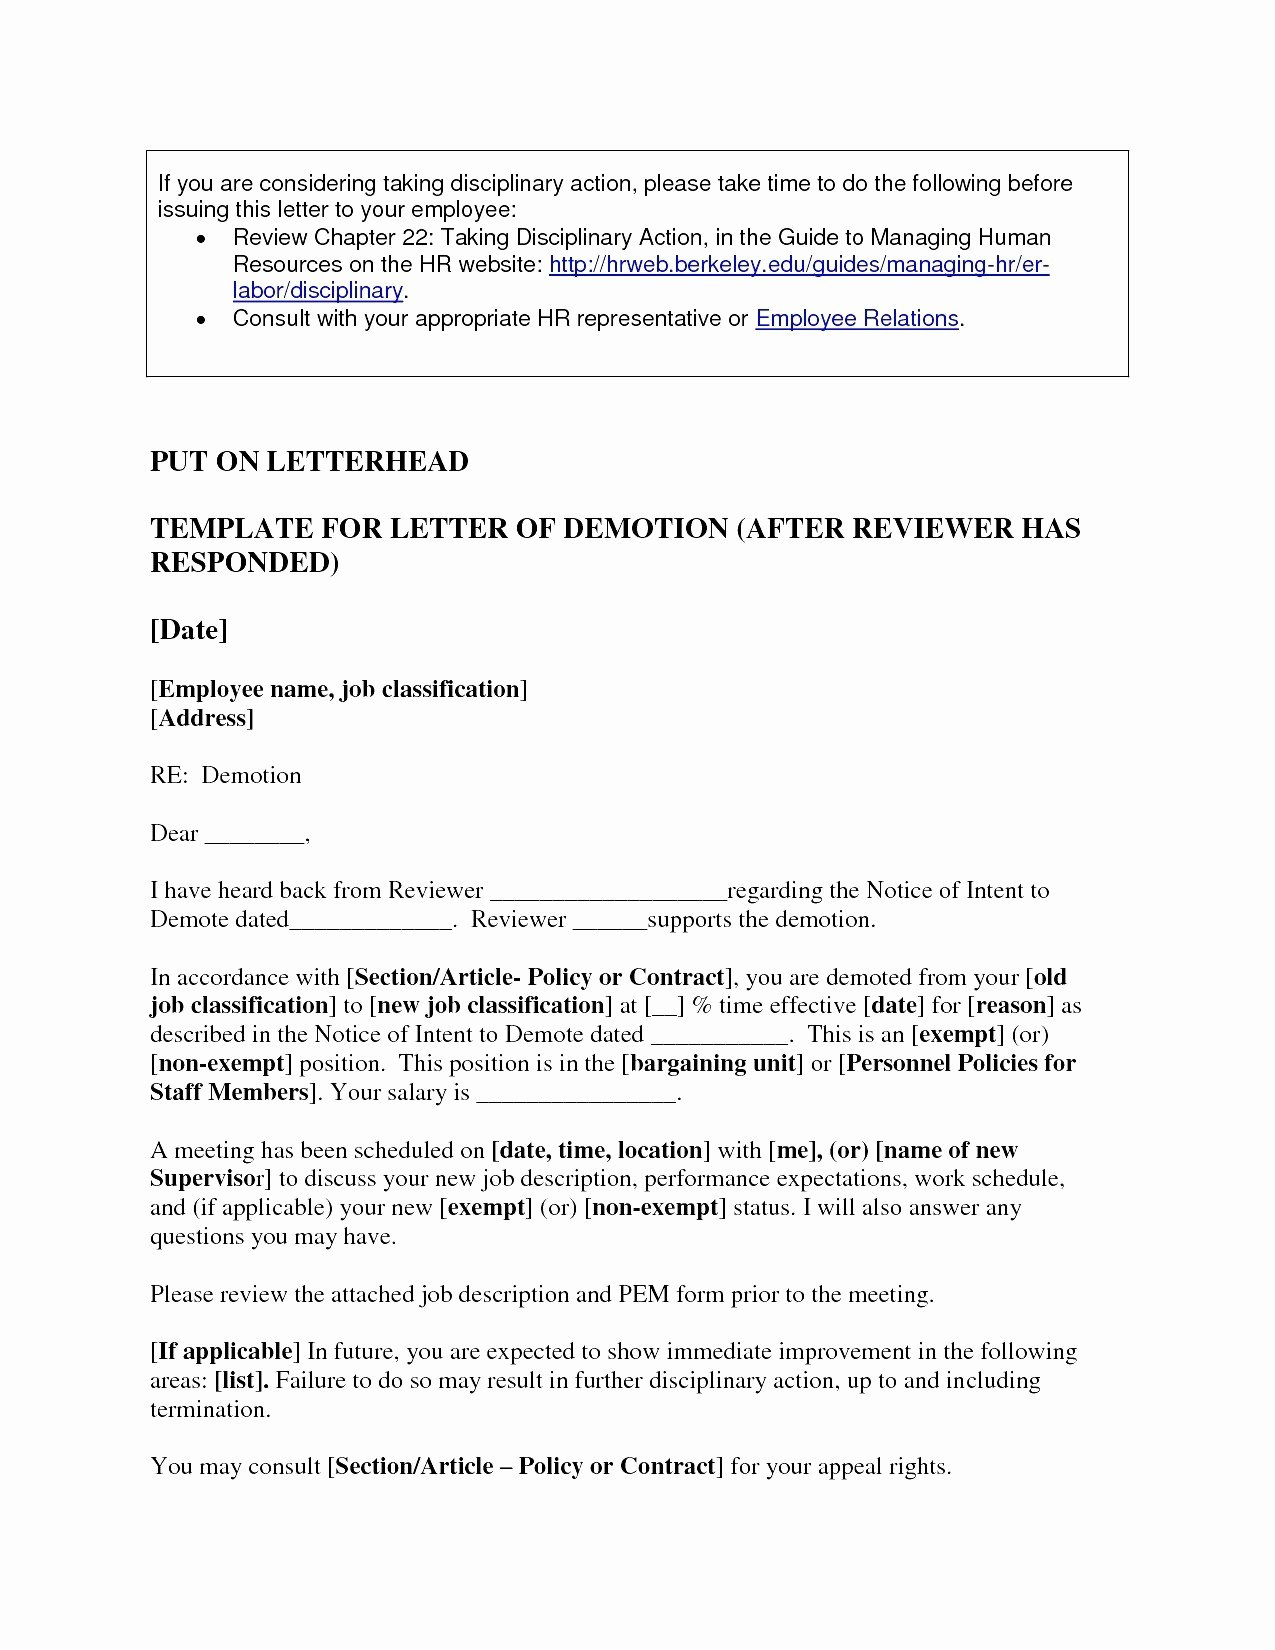 Voluntary Demotion Letter Sample Best Of Demotion Letter Sample Pdf